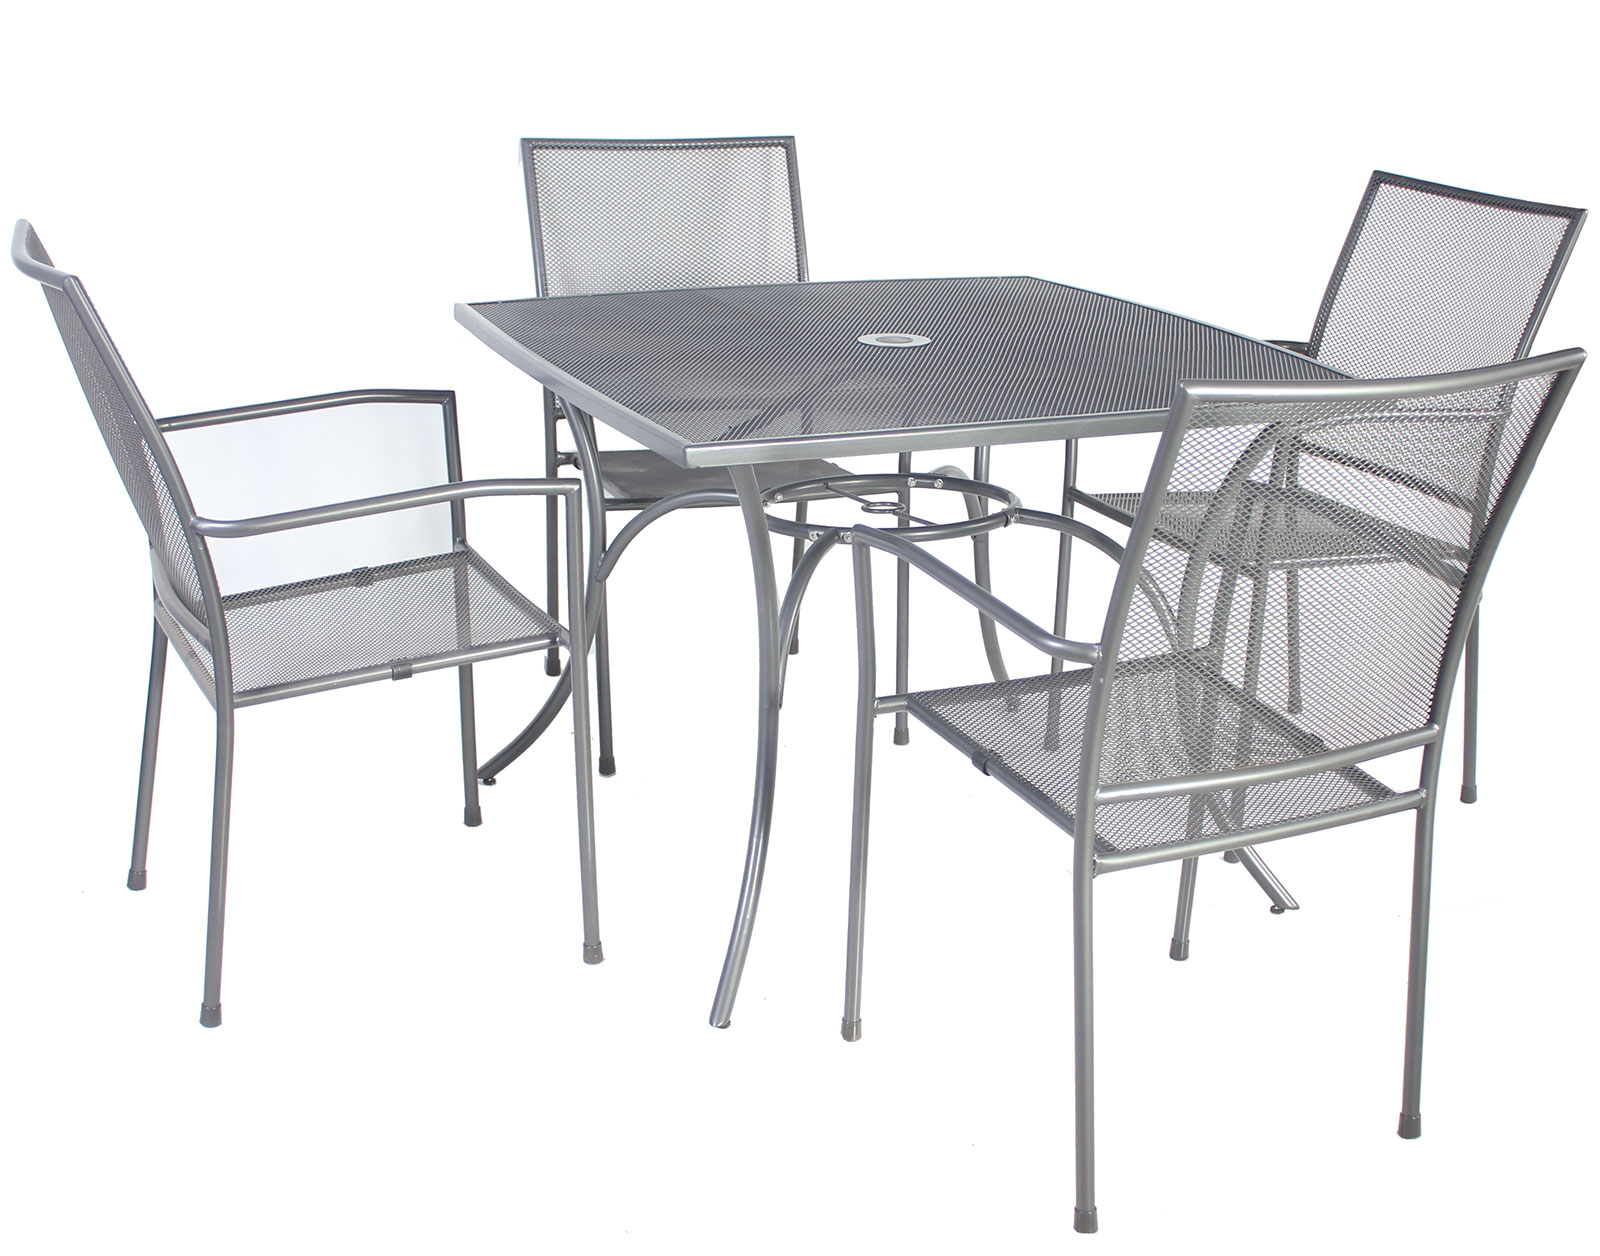 grey table and chairs white lounge chair nz charles bentley outdoor metal mesh 5 piece